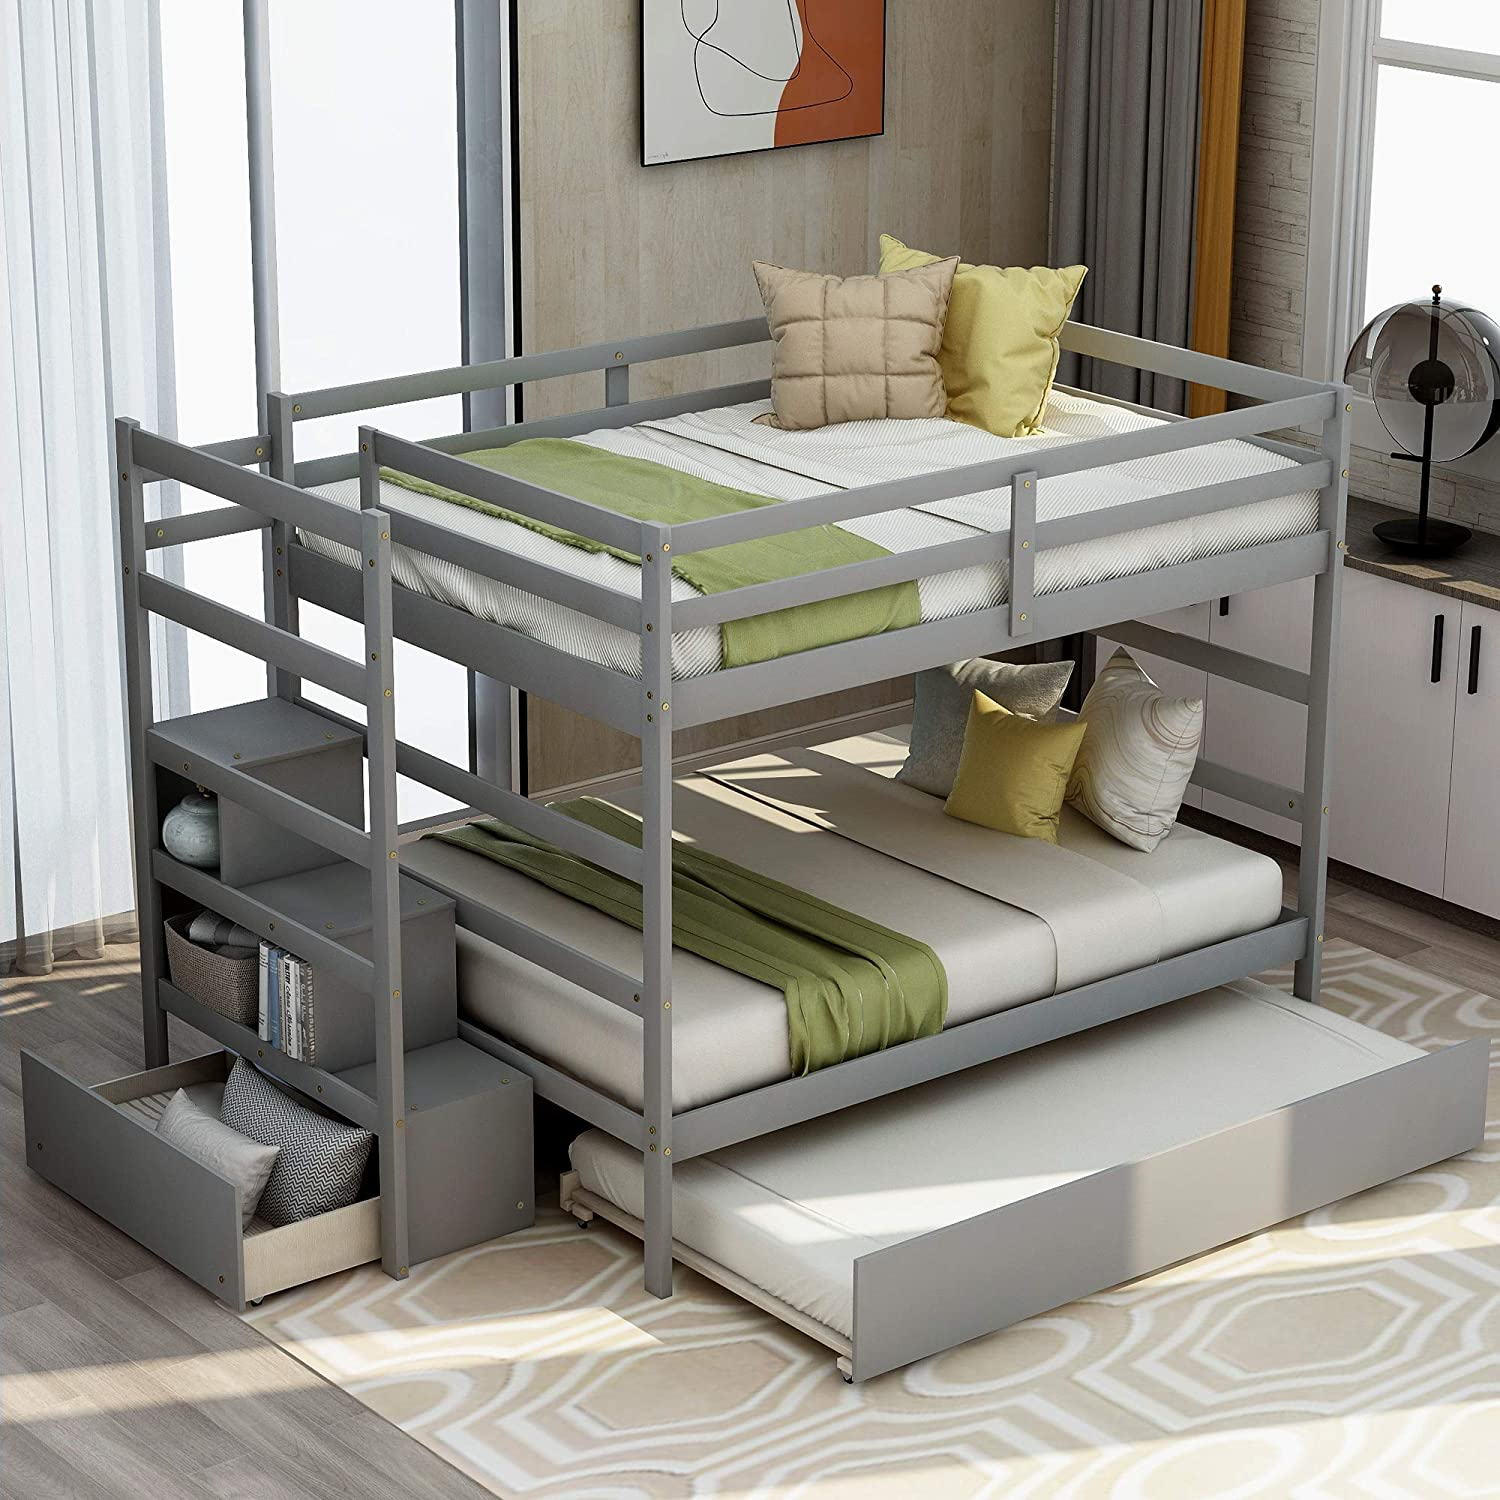 Amazon Com Full Over Full Bunk Bed With Twin Size Trundle Storage And Drawer Twin Over Pull Out Bunk Bed For Kids Adult No Box Spring Needed Kitchen Dining